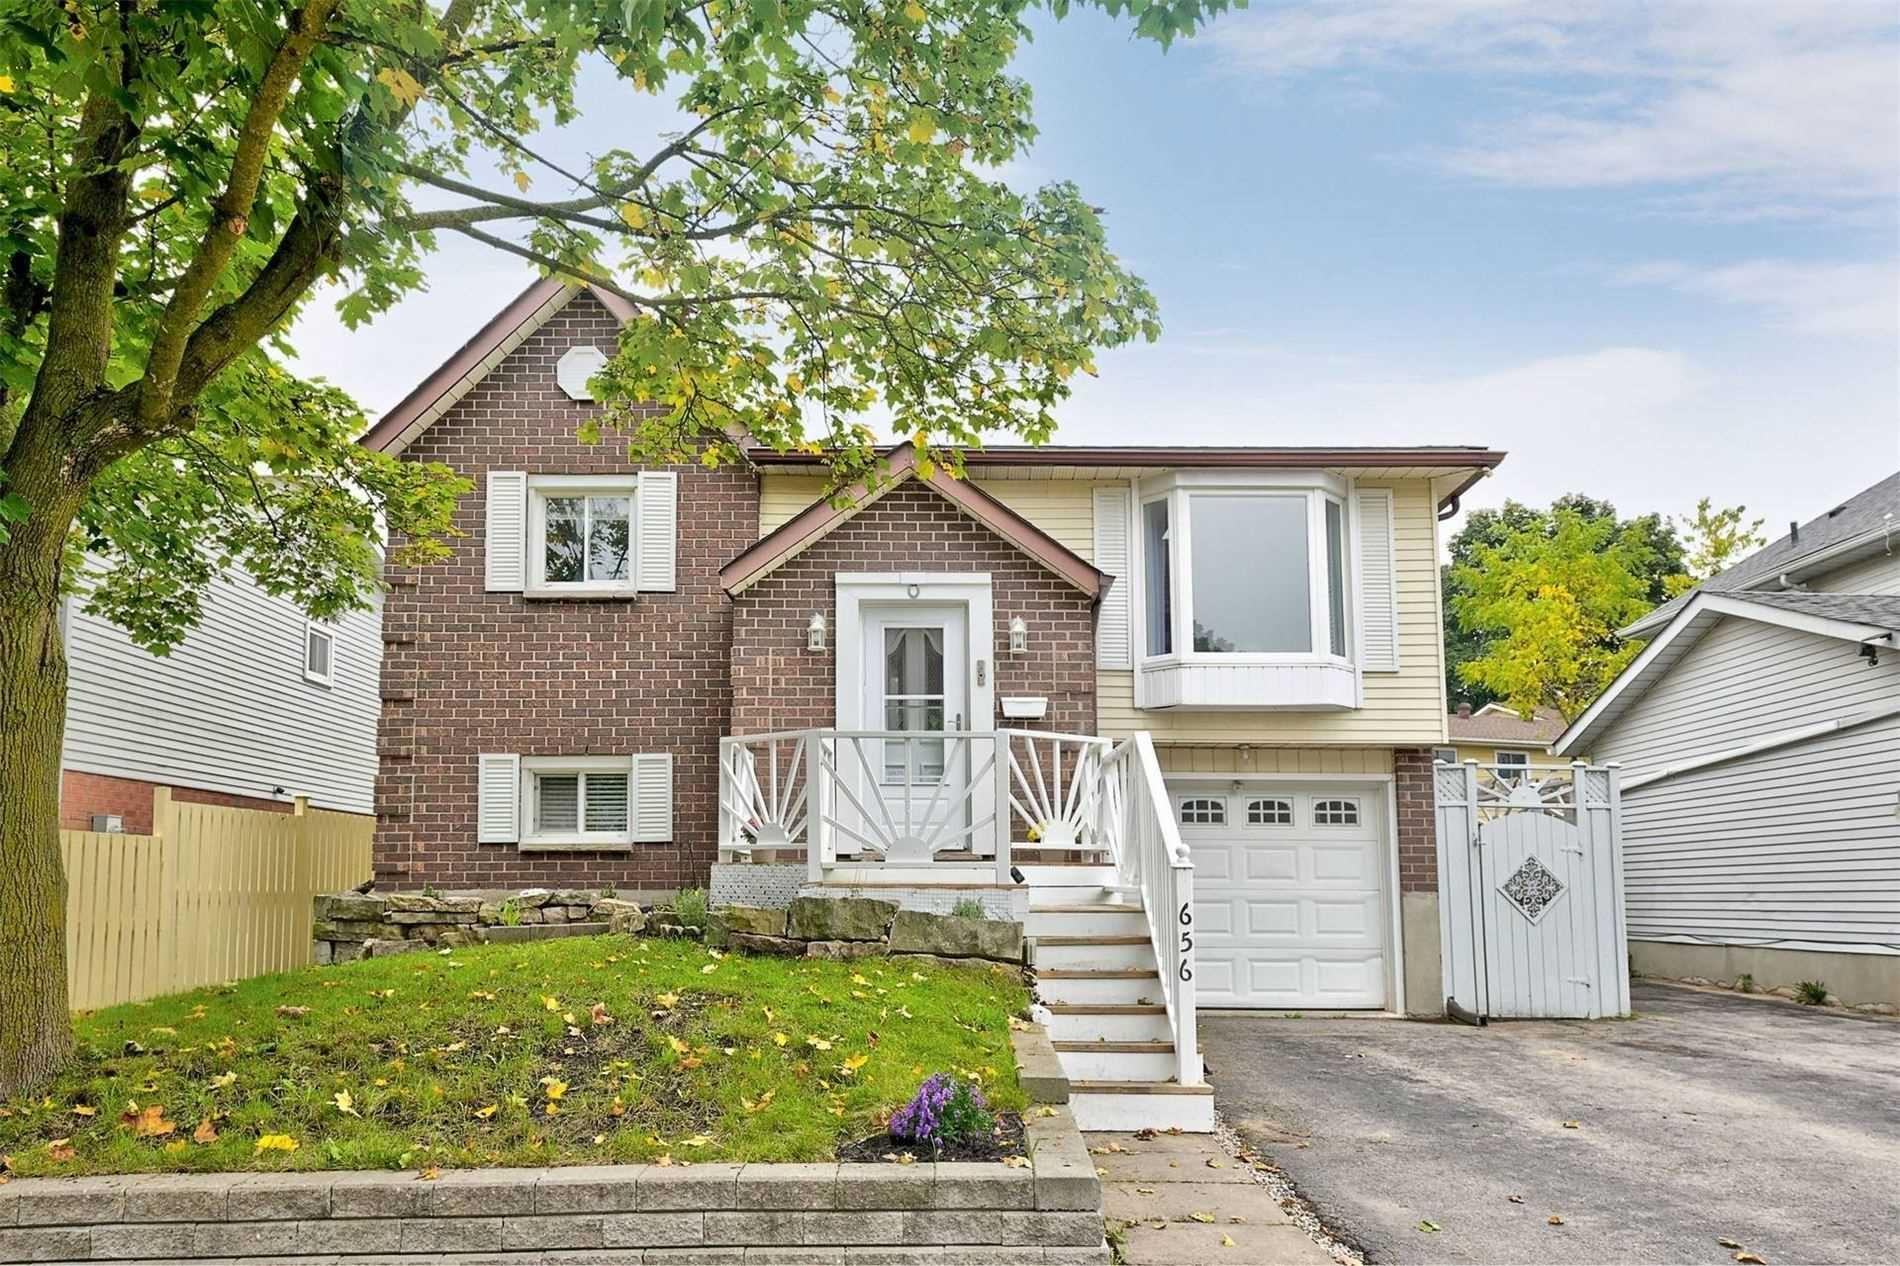 656 Hillview Rd, Cambridge, ON N3H5H3 - MLS#: X5400199